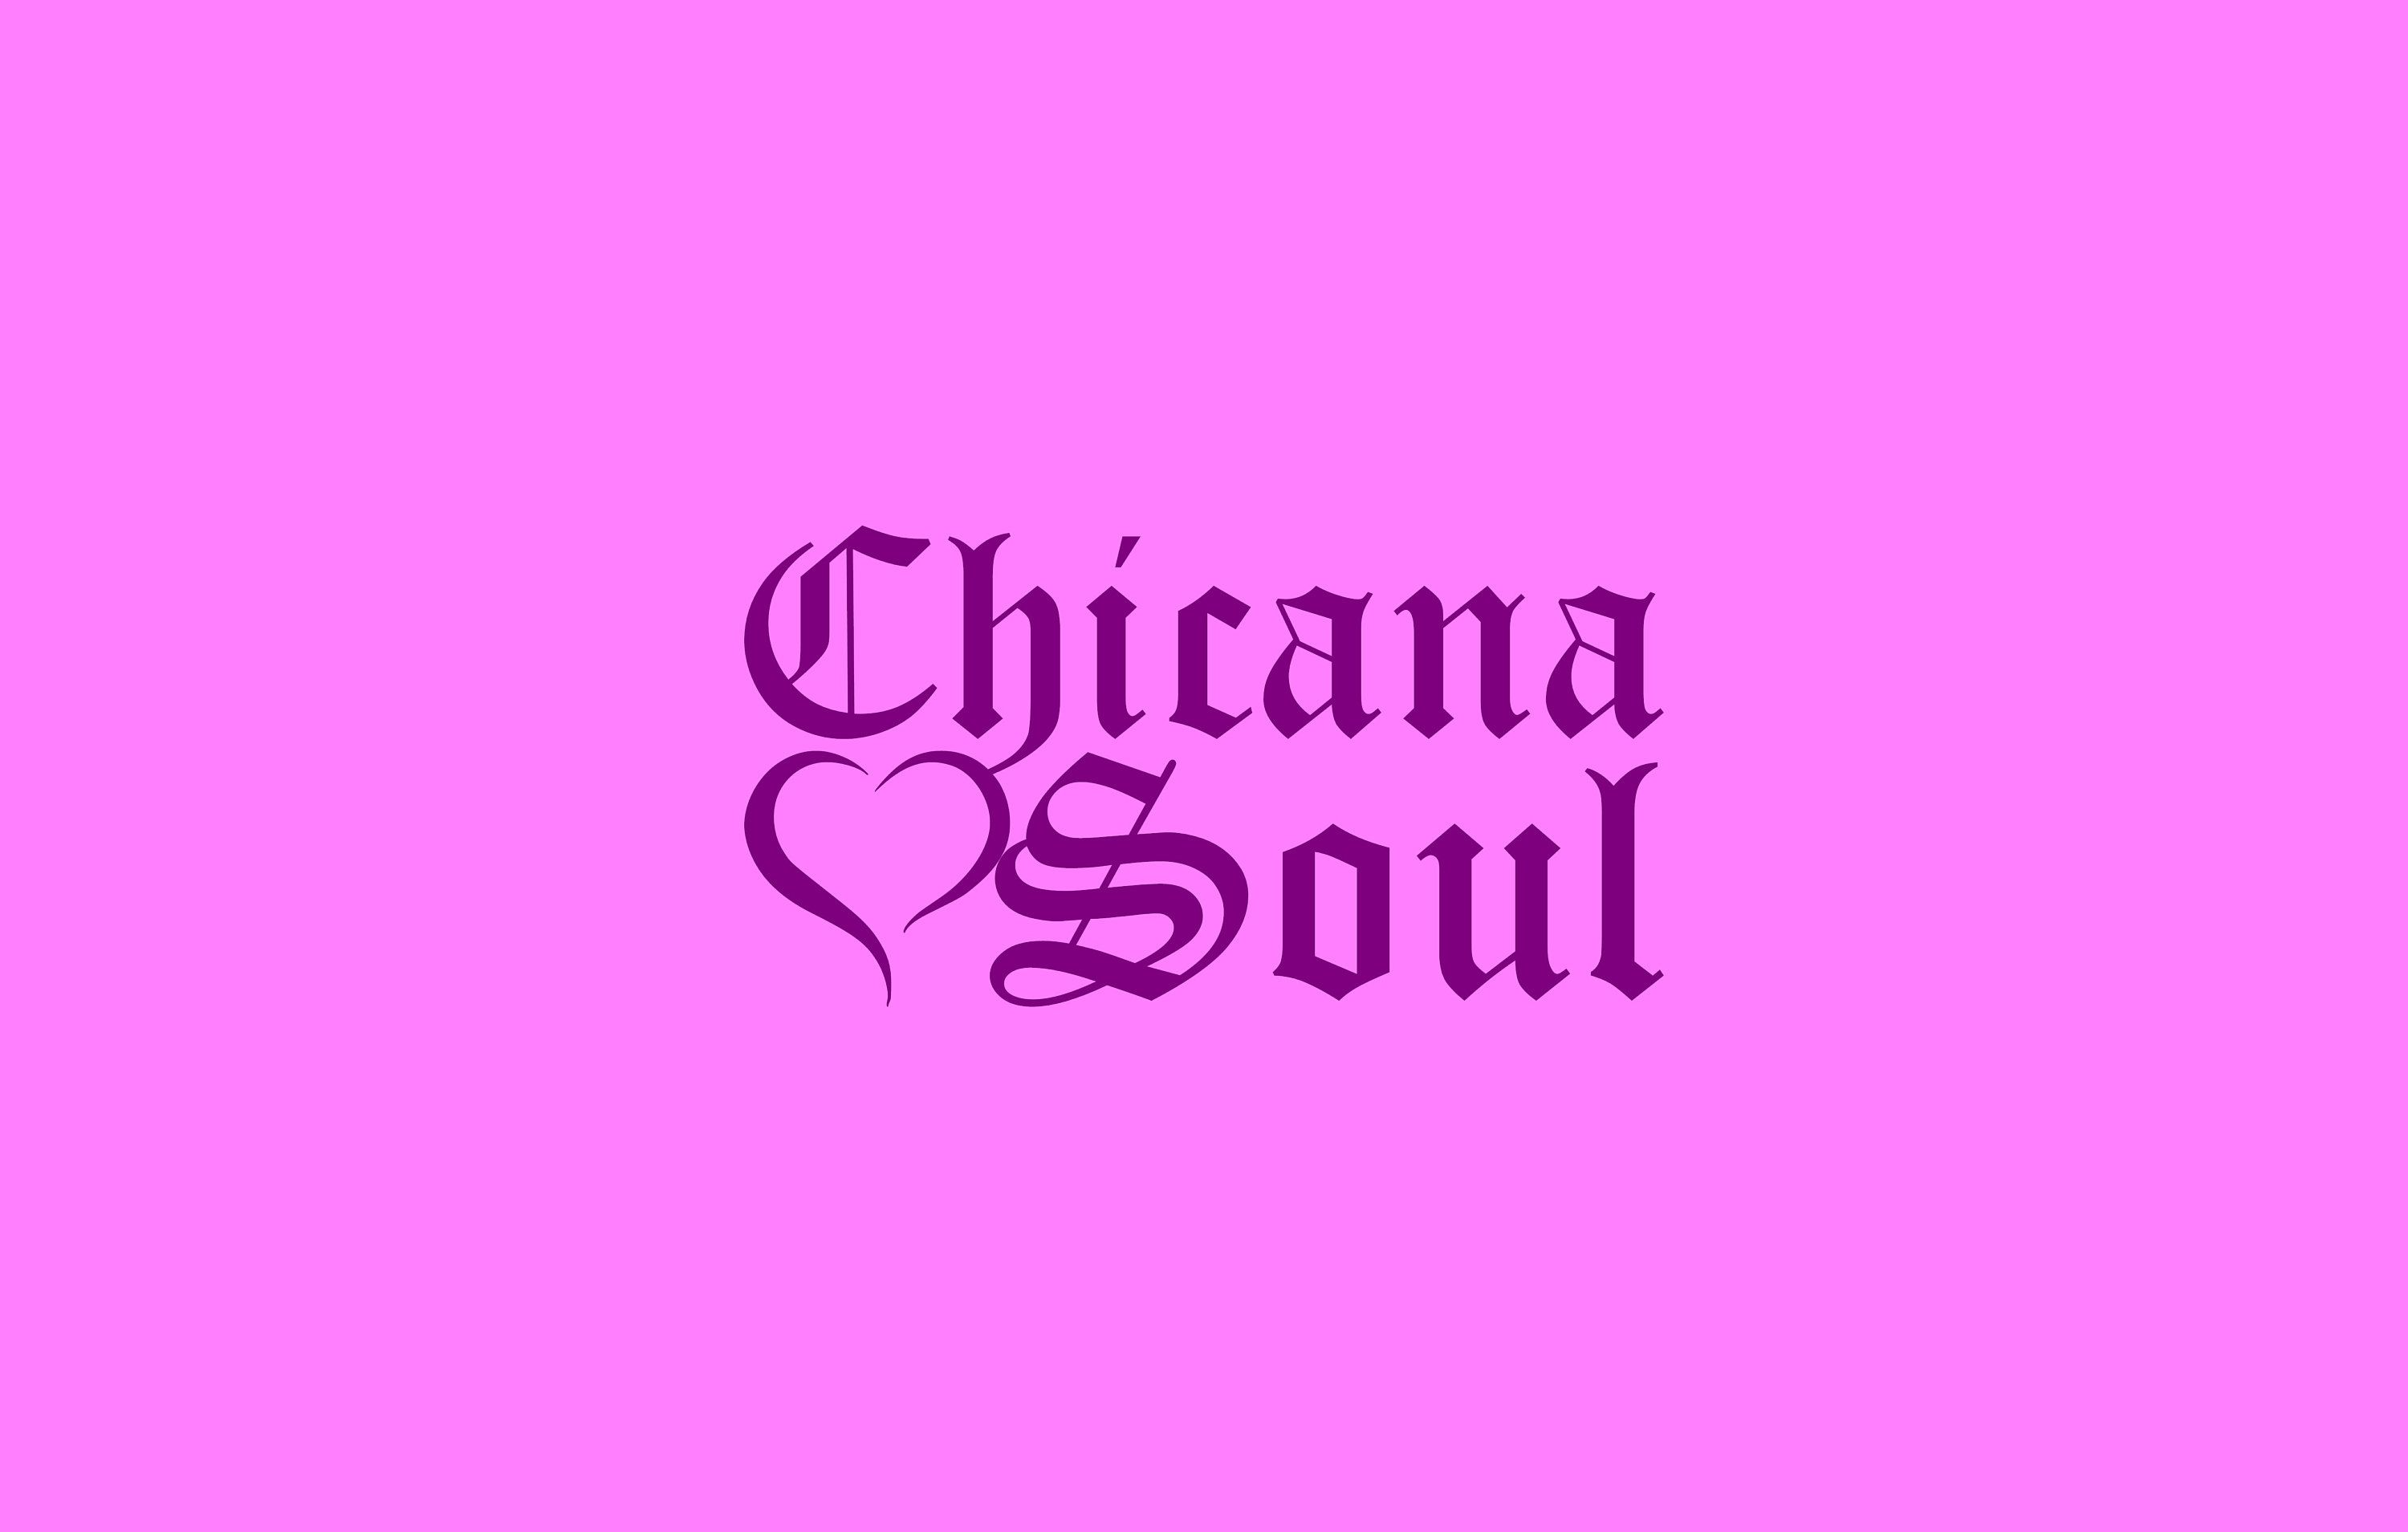 Chicana Soul With Heart Gangsta Quotes Chicano Quote Chicana